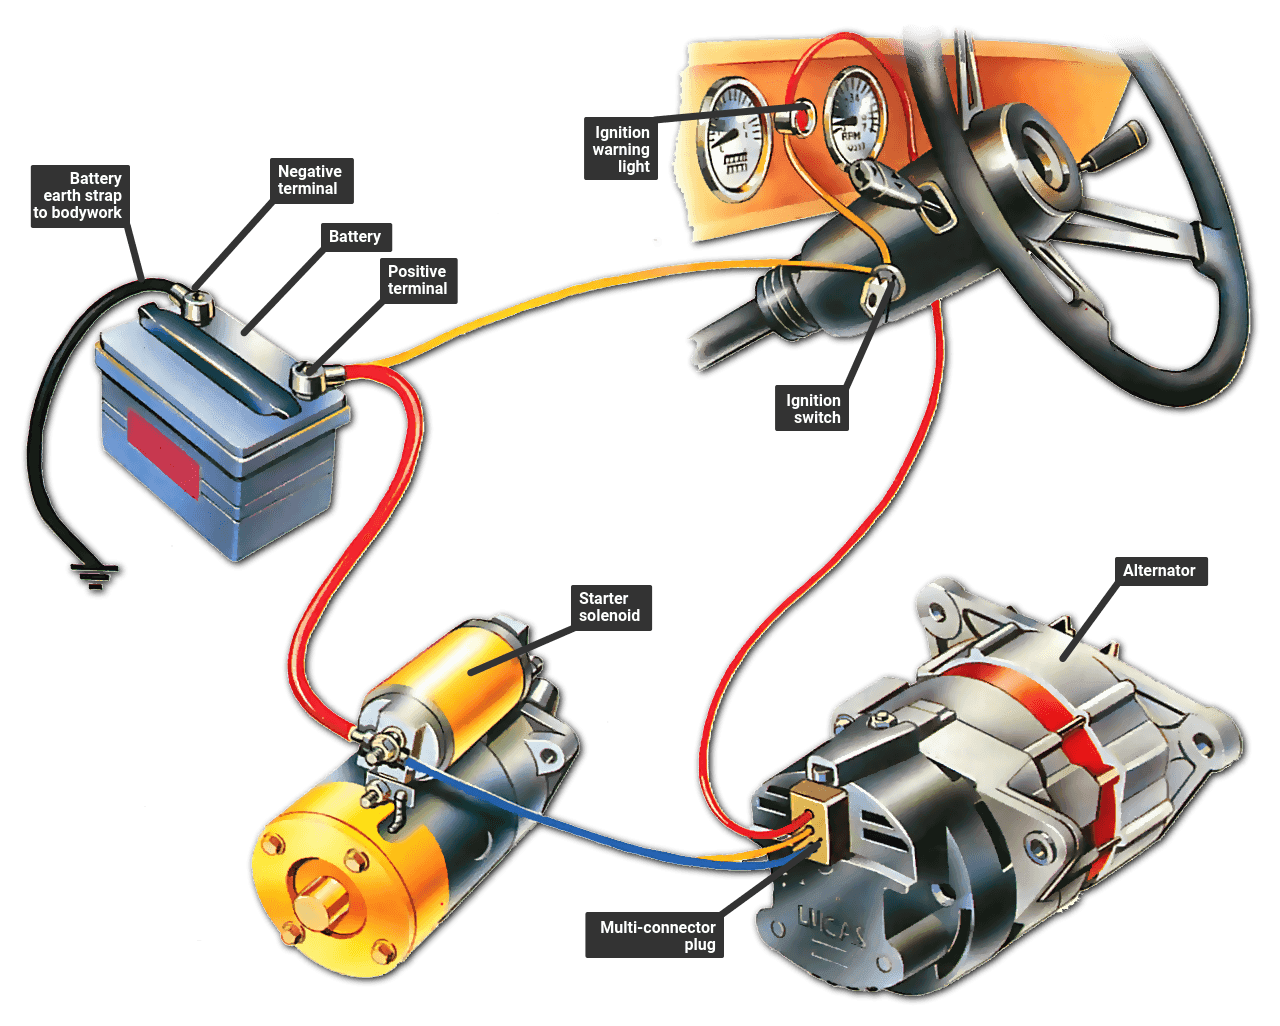 Troubleshooting the ignition warning light | How a Car Works | Battery Warning Light Wiring Diagram For |  | How a Car Works